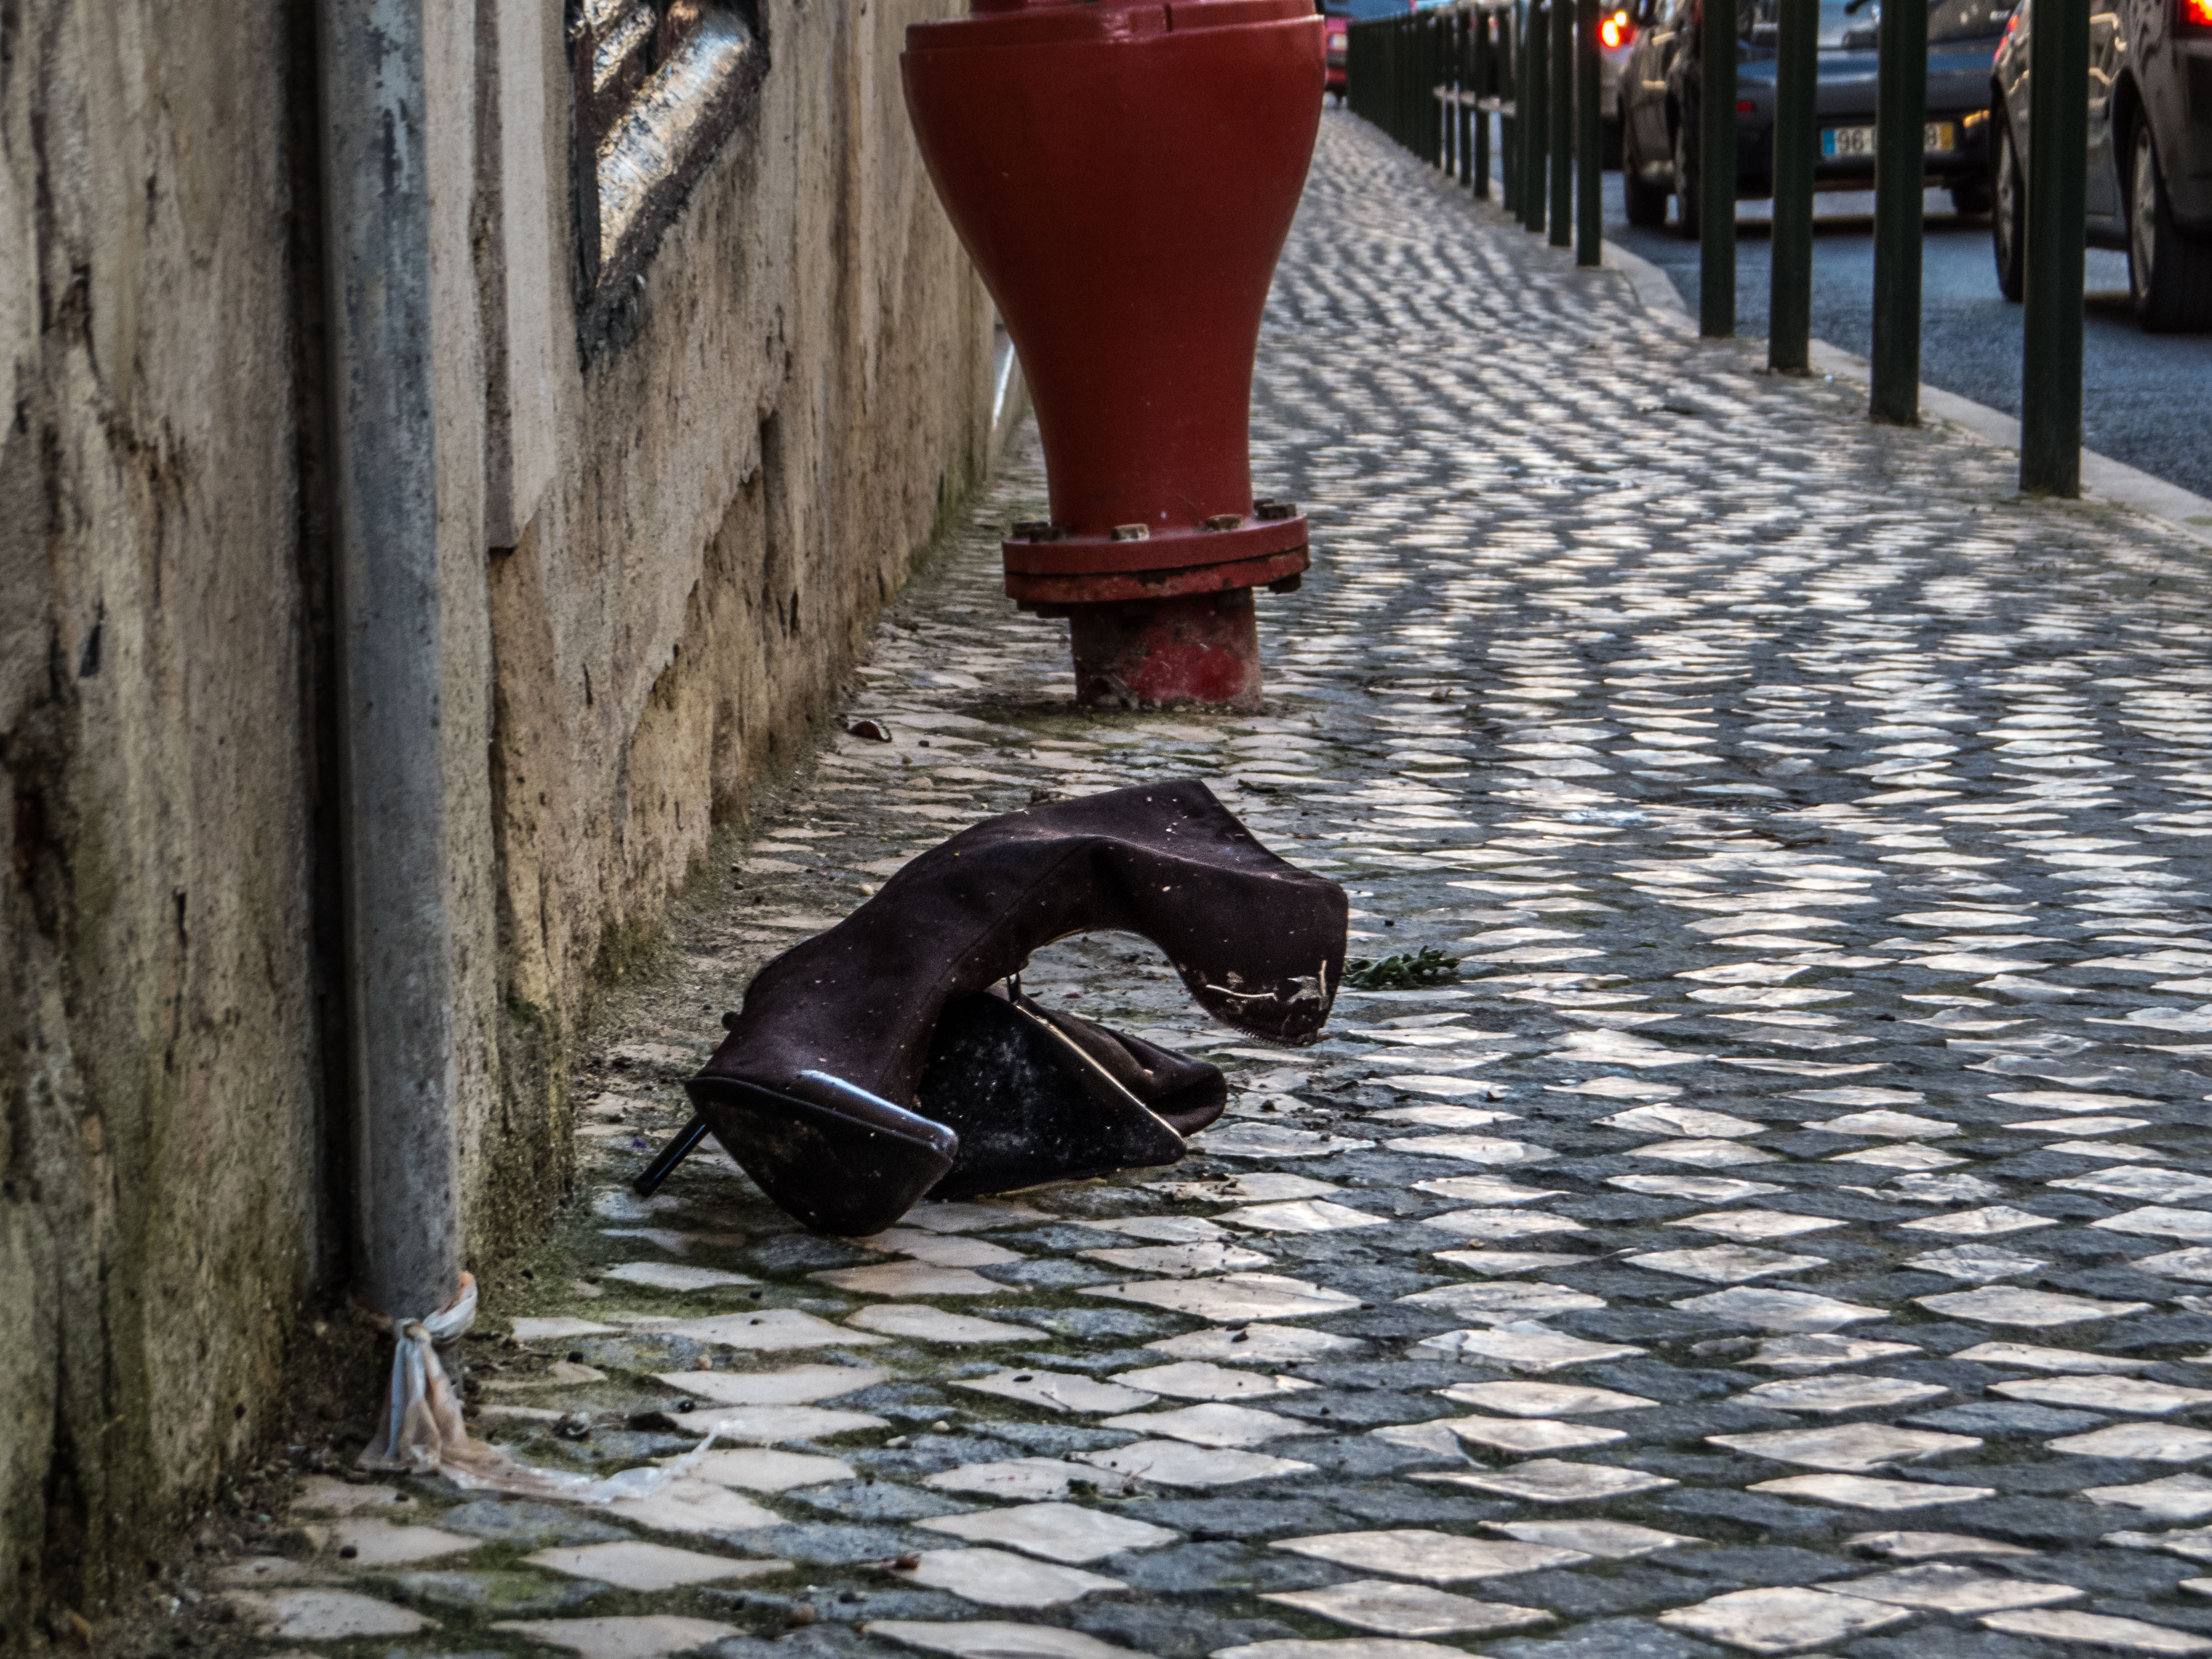 Lost shoes, Road, Portugal, Shoes, Top, HQ Photo